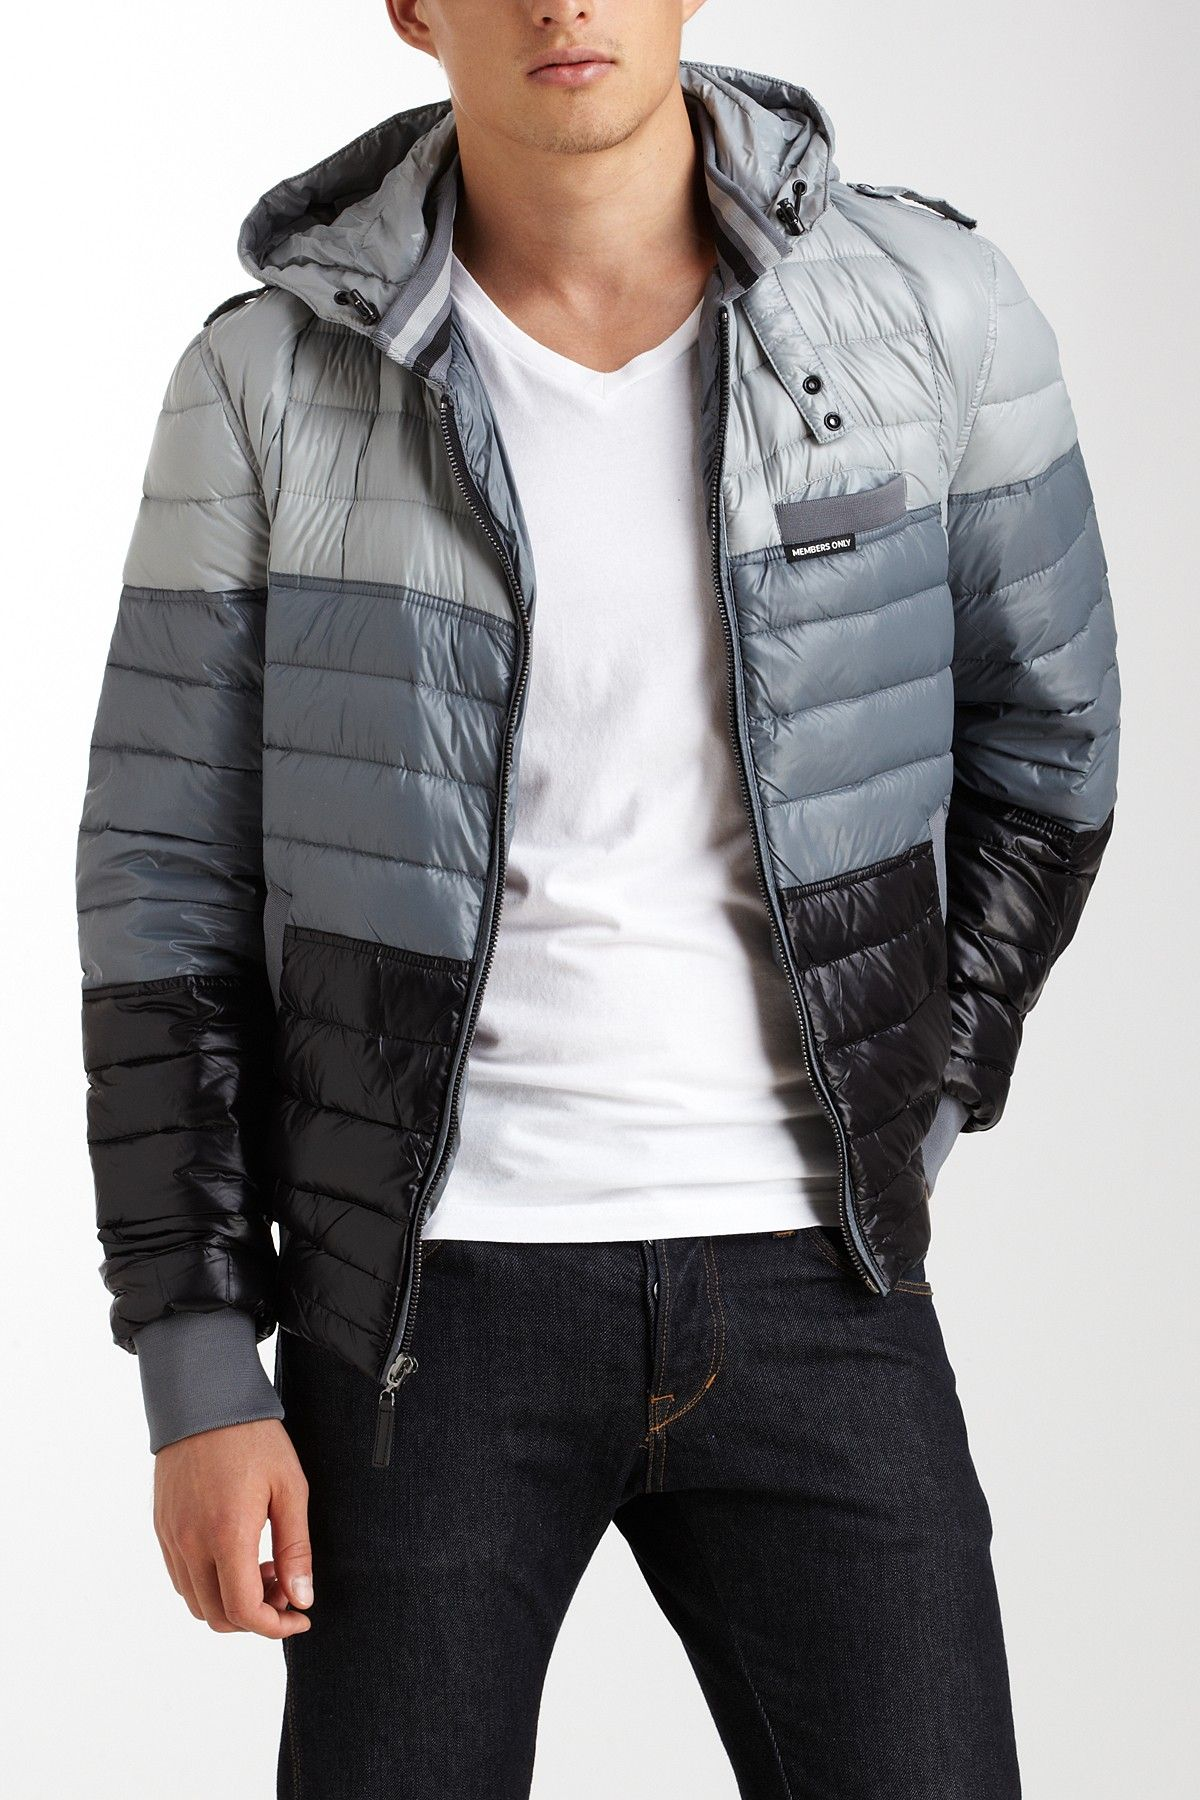 Members Only Slimmed Down Multicolor Puffer Jacket Mens Jackets Jackets Mens Outfits [ 1800 x 1200 Pixel ]